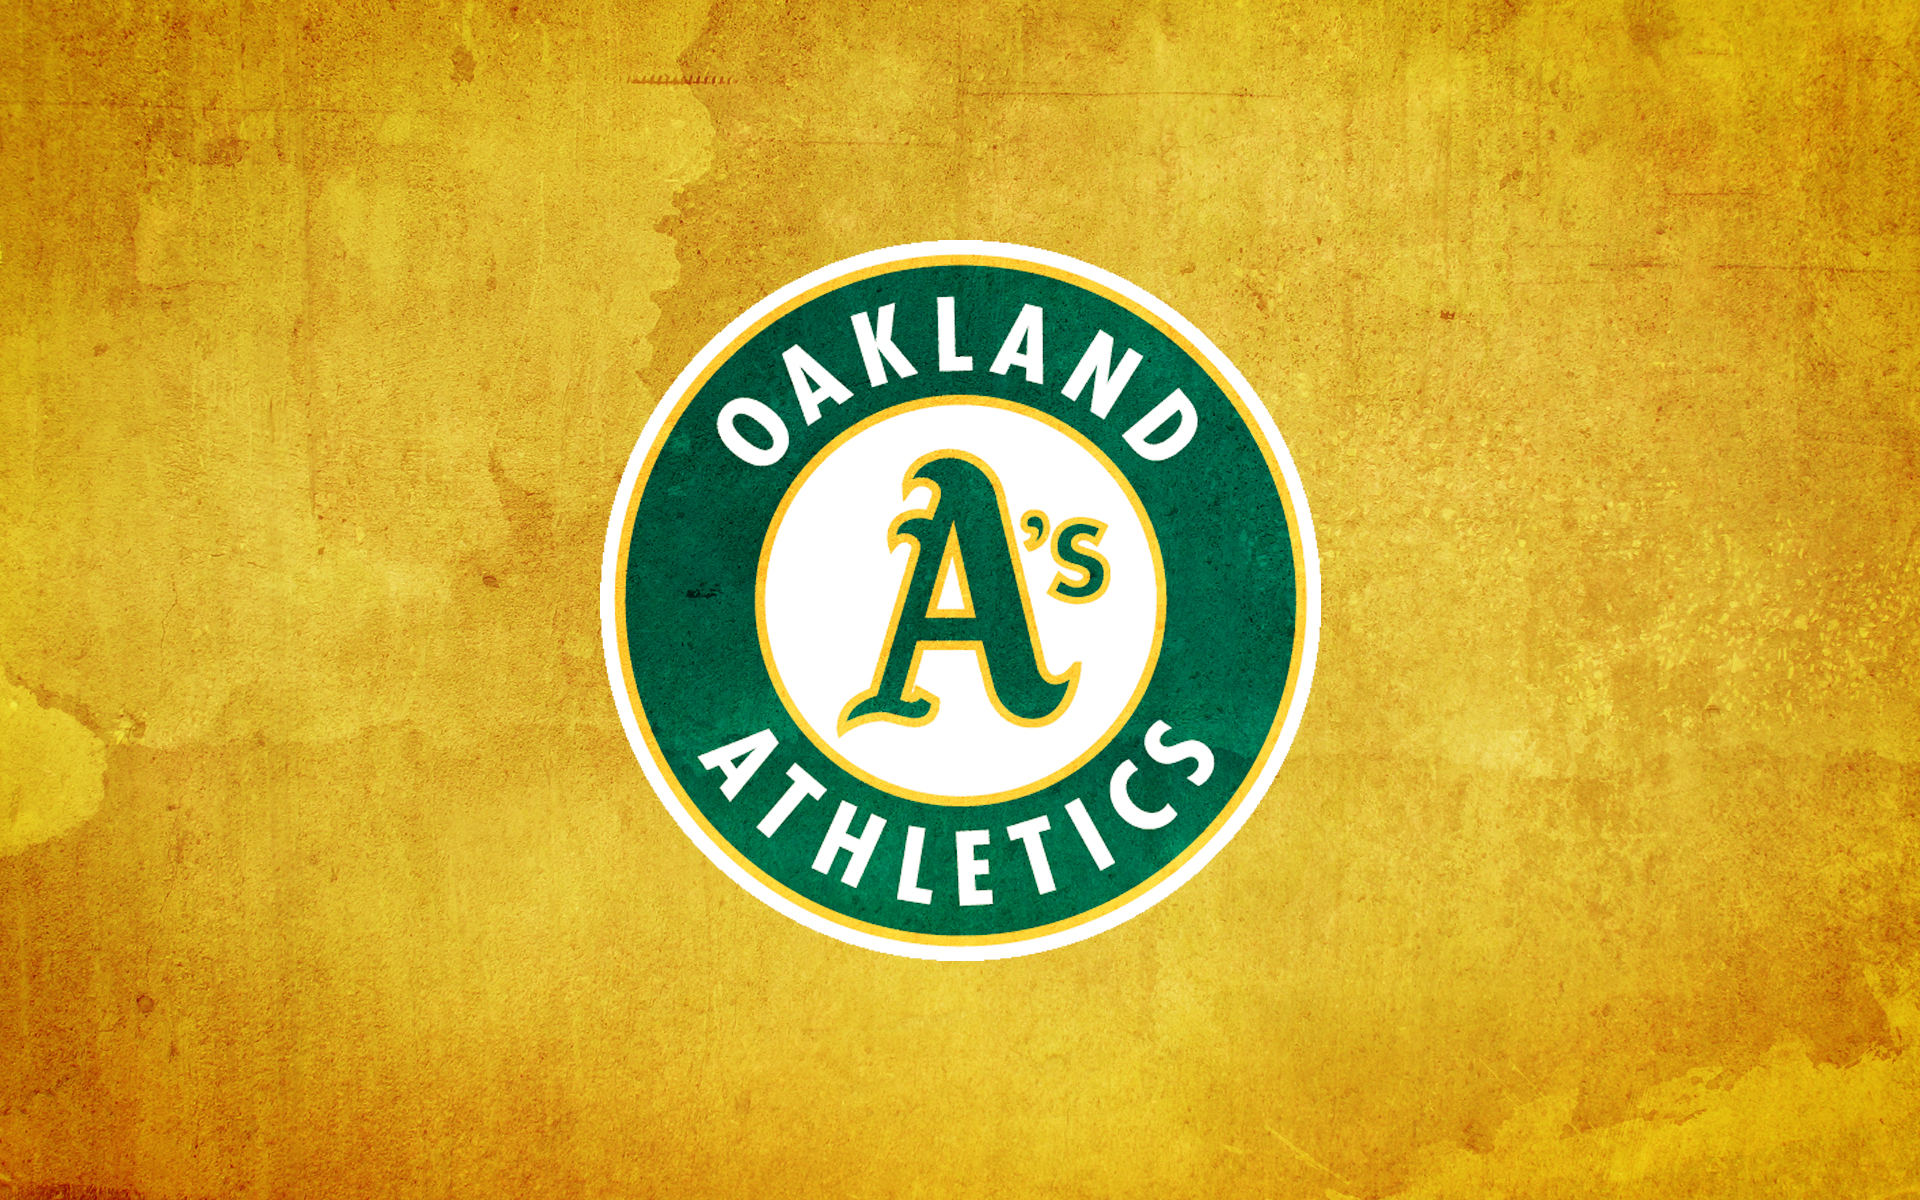 1920x1200 - Oakland Athletics Wallpapers 2